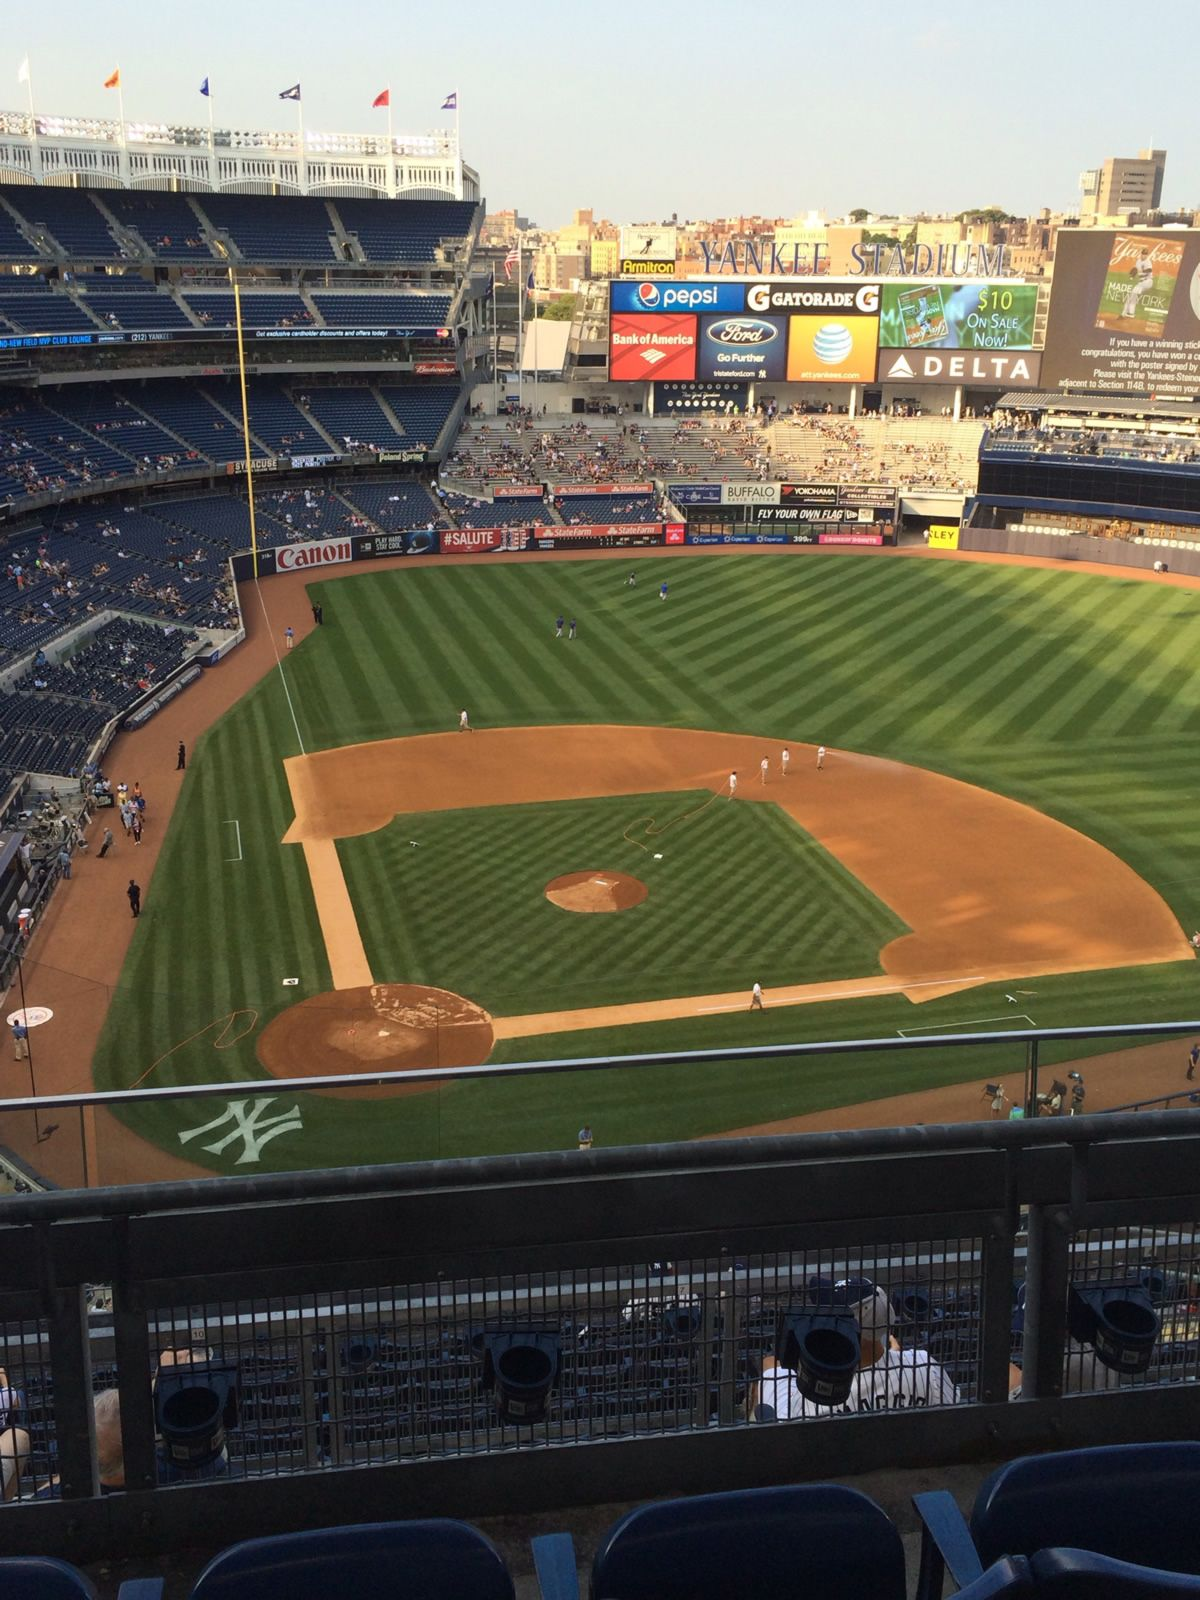 New York Yankees Seat View for Yankee Stadium Section 418, Row 3, Seat 13